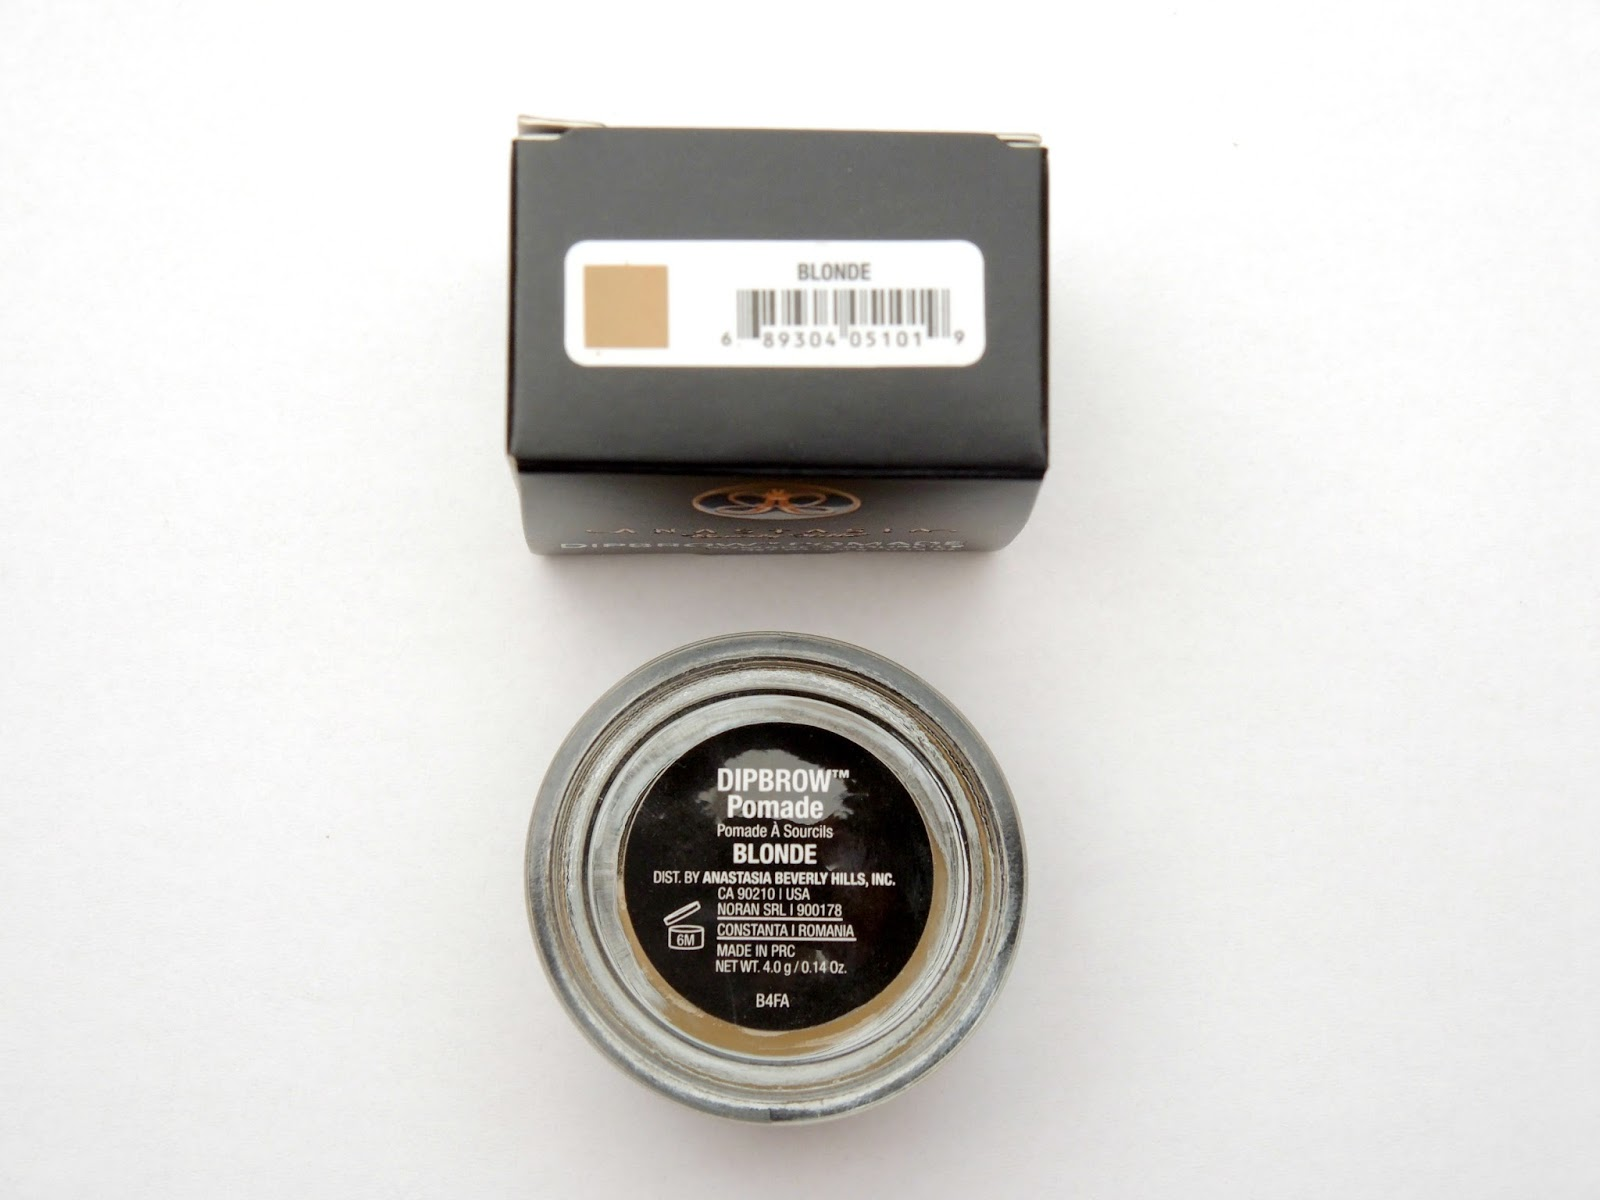 Anastasia Beverly Hills Dipbrow Pomade Blonde Review